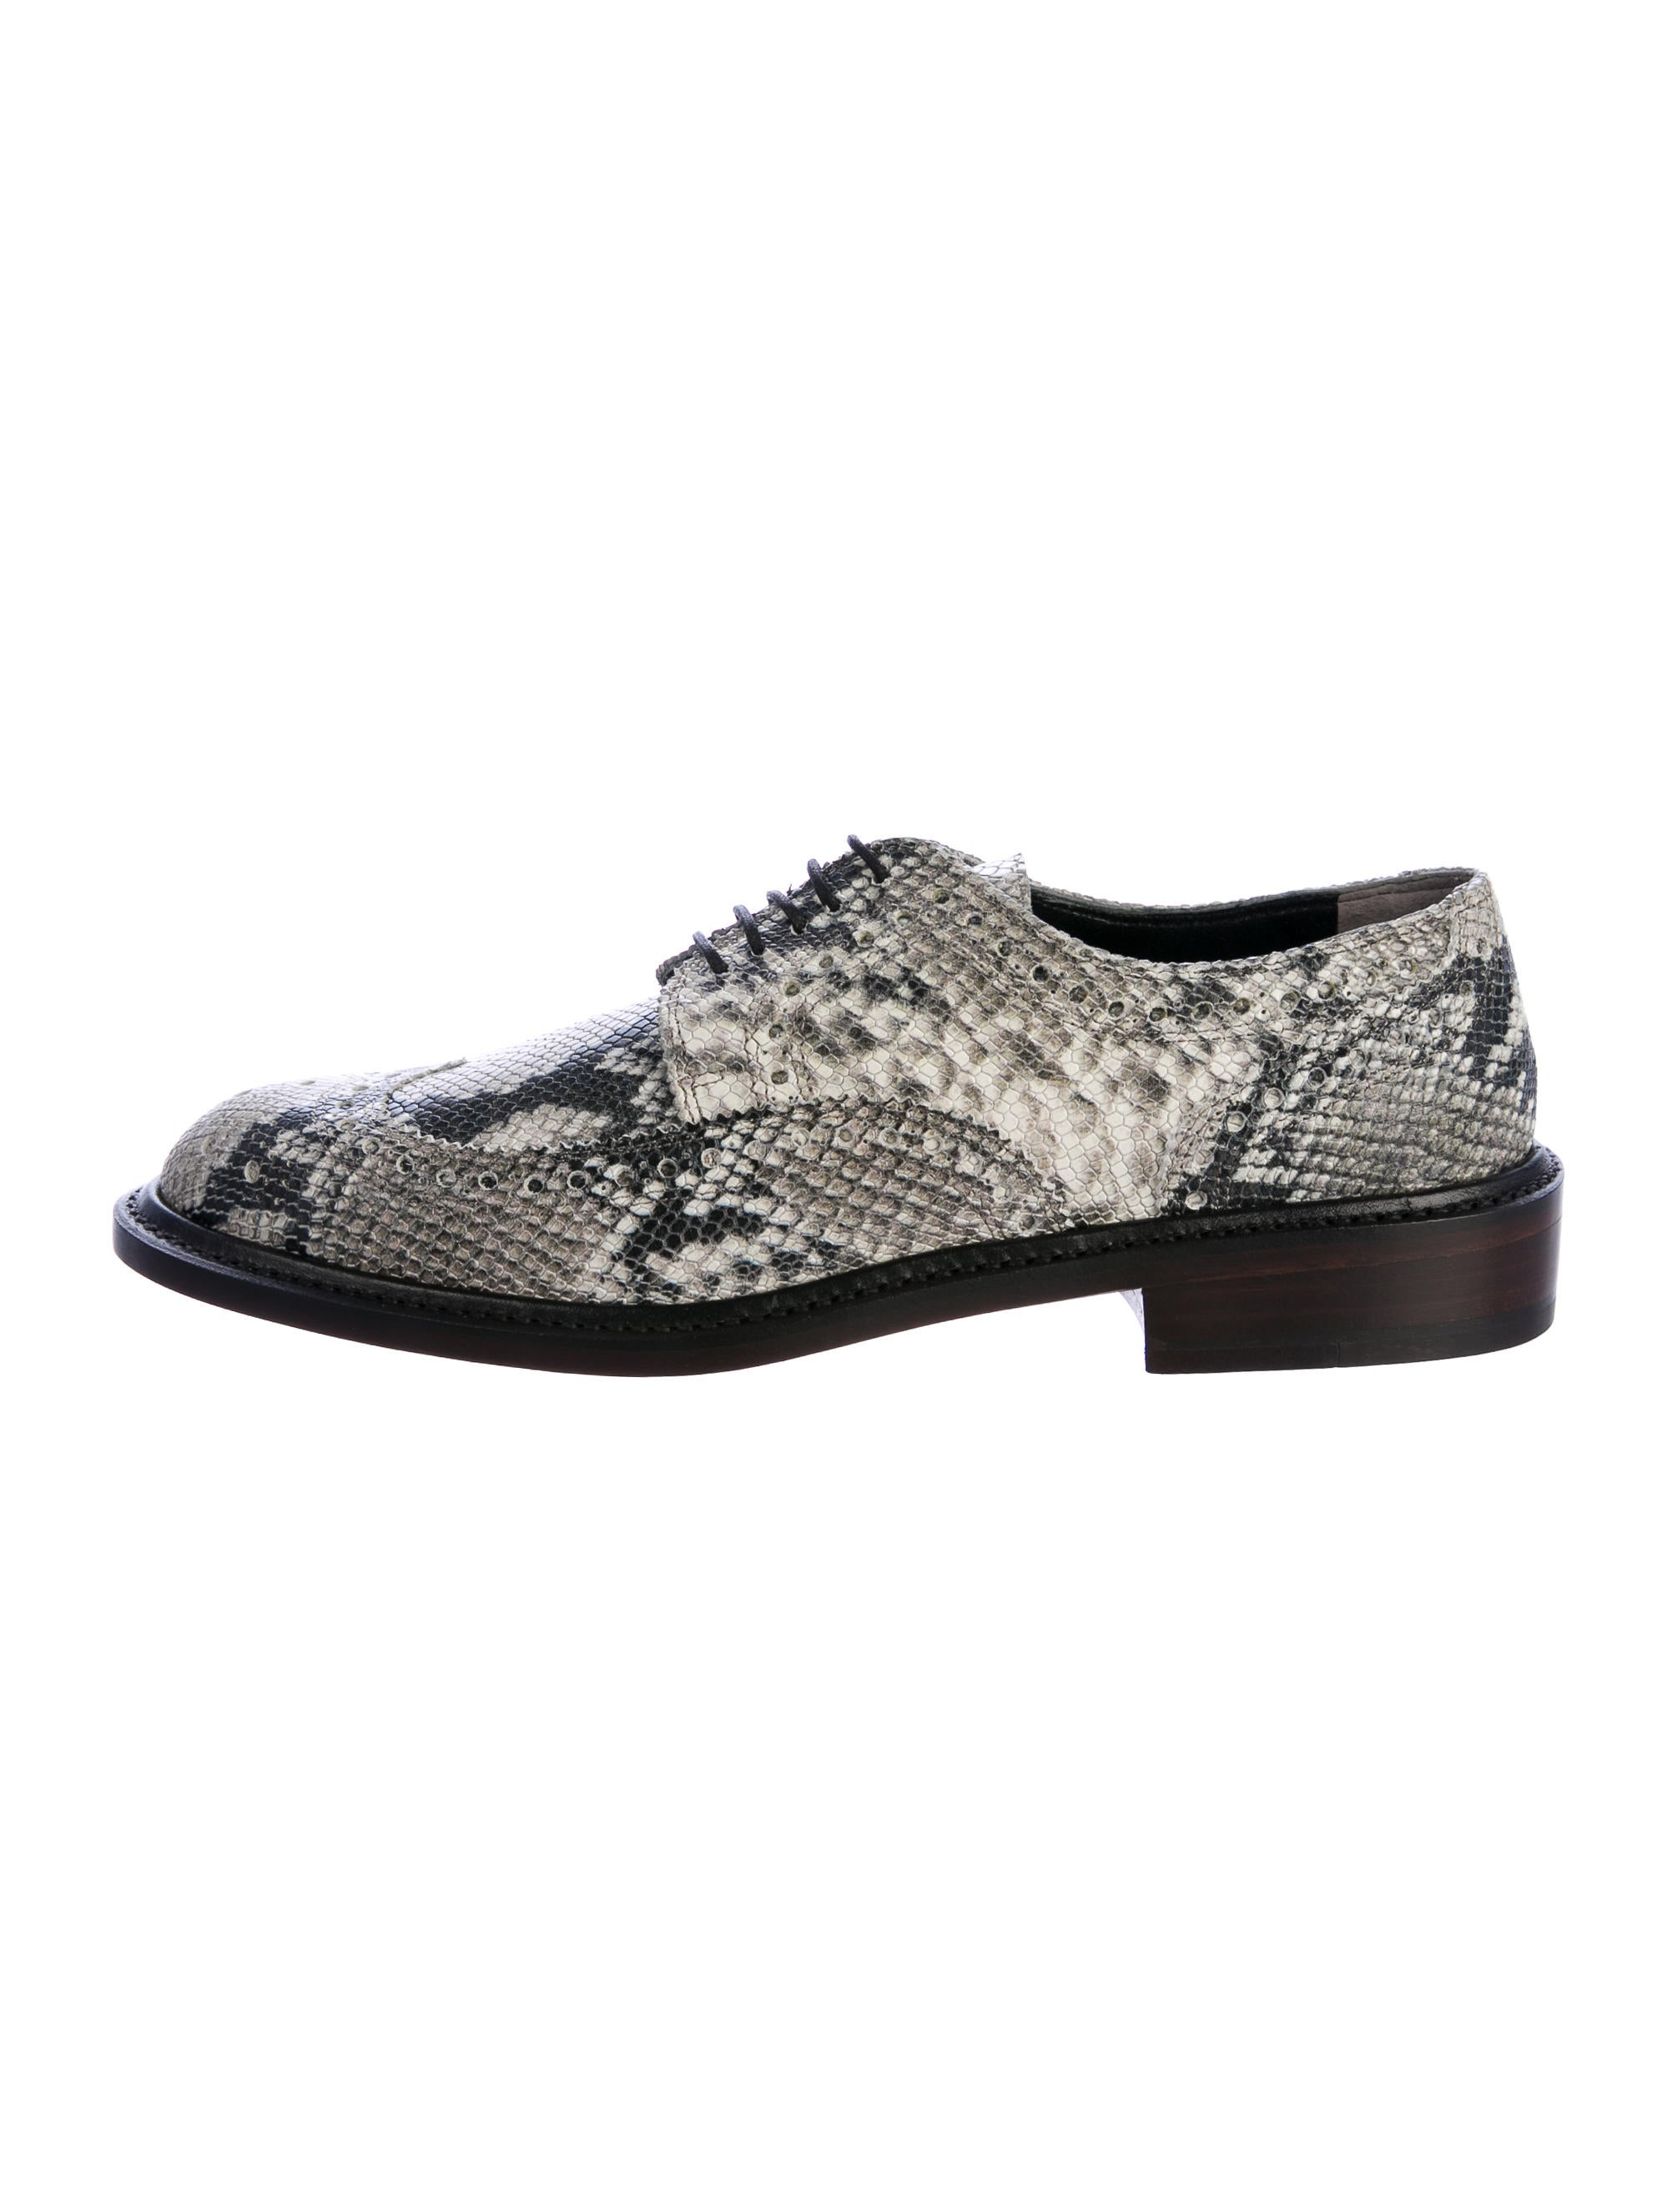 cheap wholesale Robert Clergerie Embossed Brogue Oxfords w/ Tags 2014 new online Gd1tRydW8o